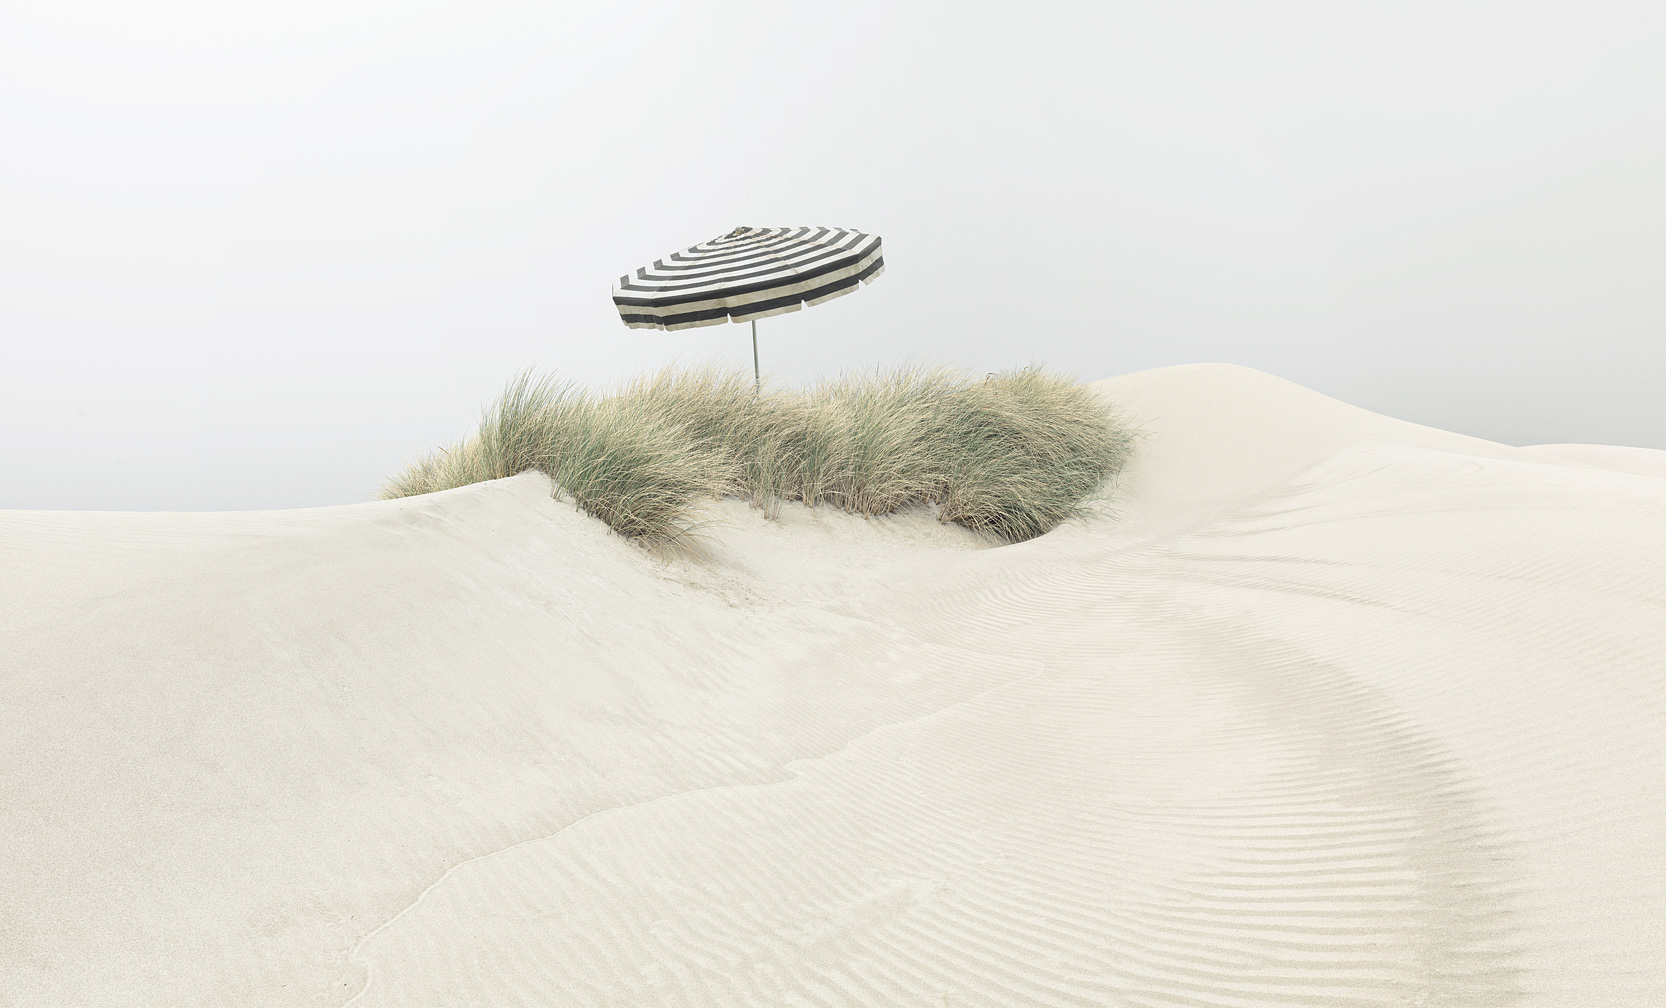 Umbrella on Dune